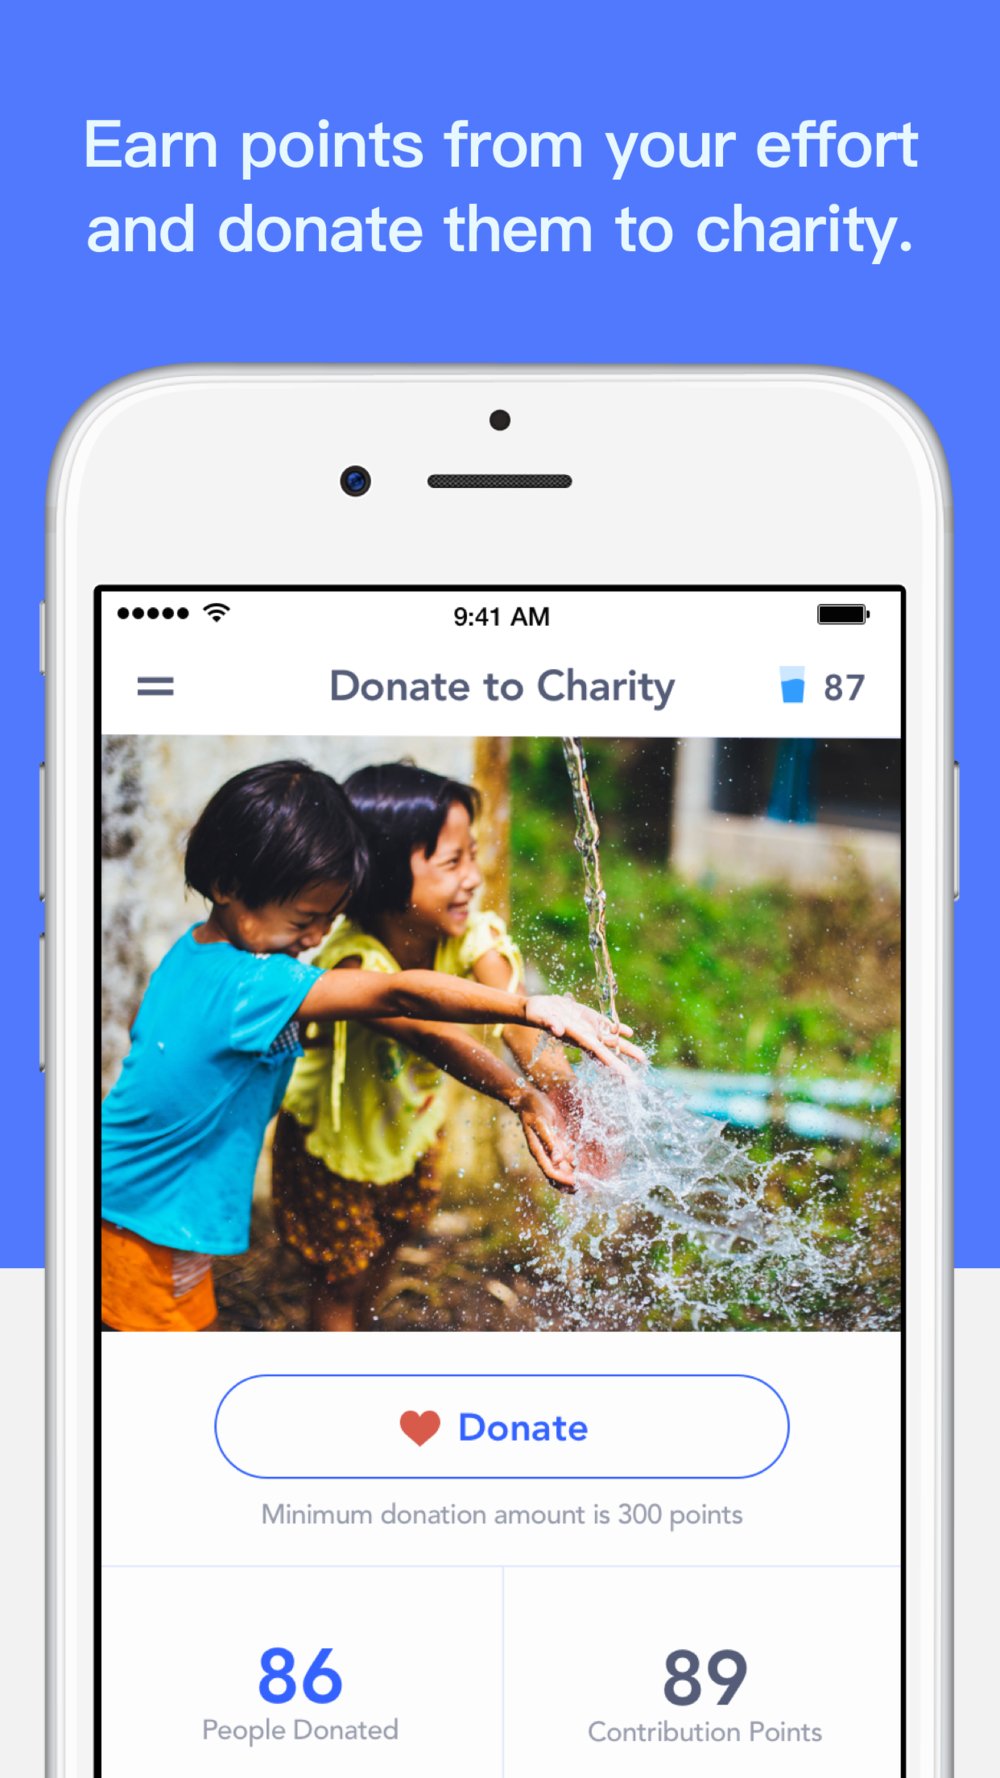 Screenshot - iPhone 6 Plus - Donate.png